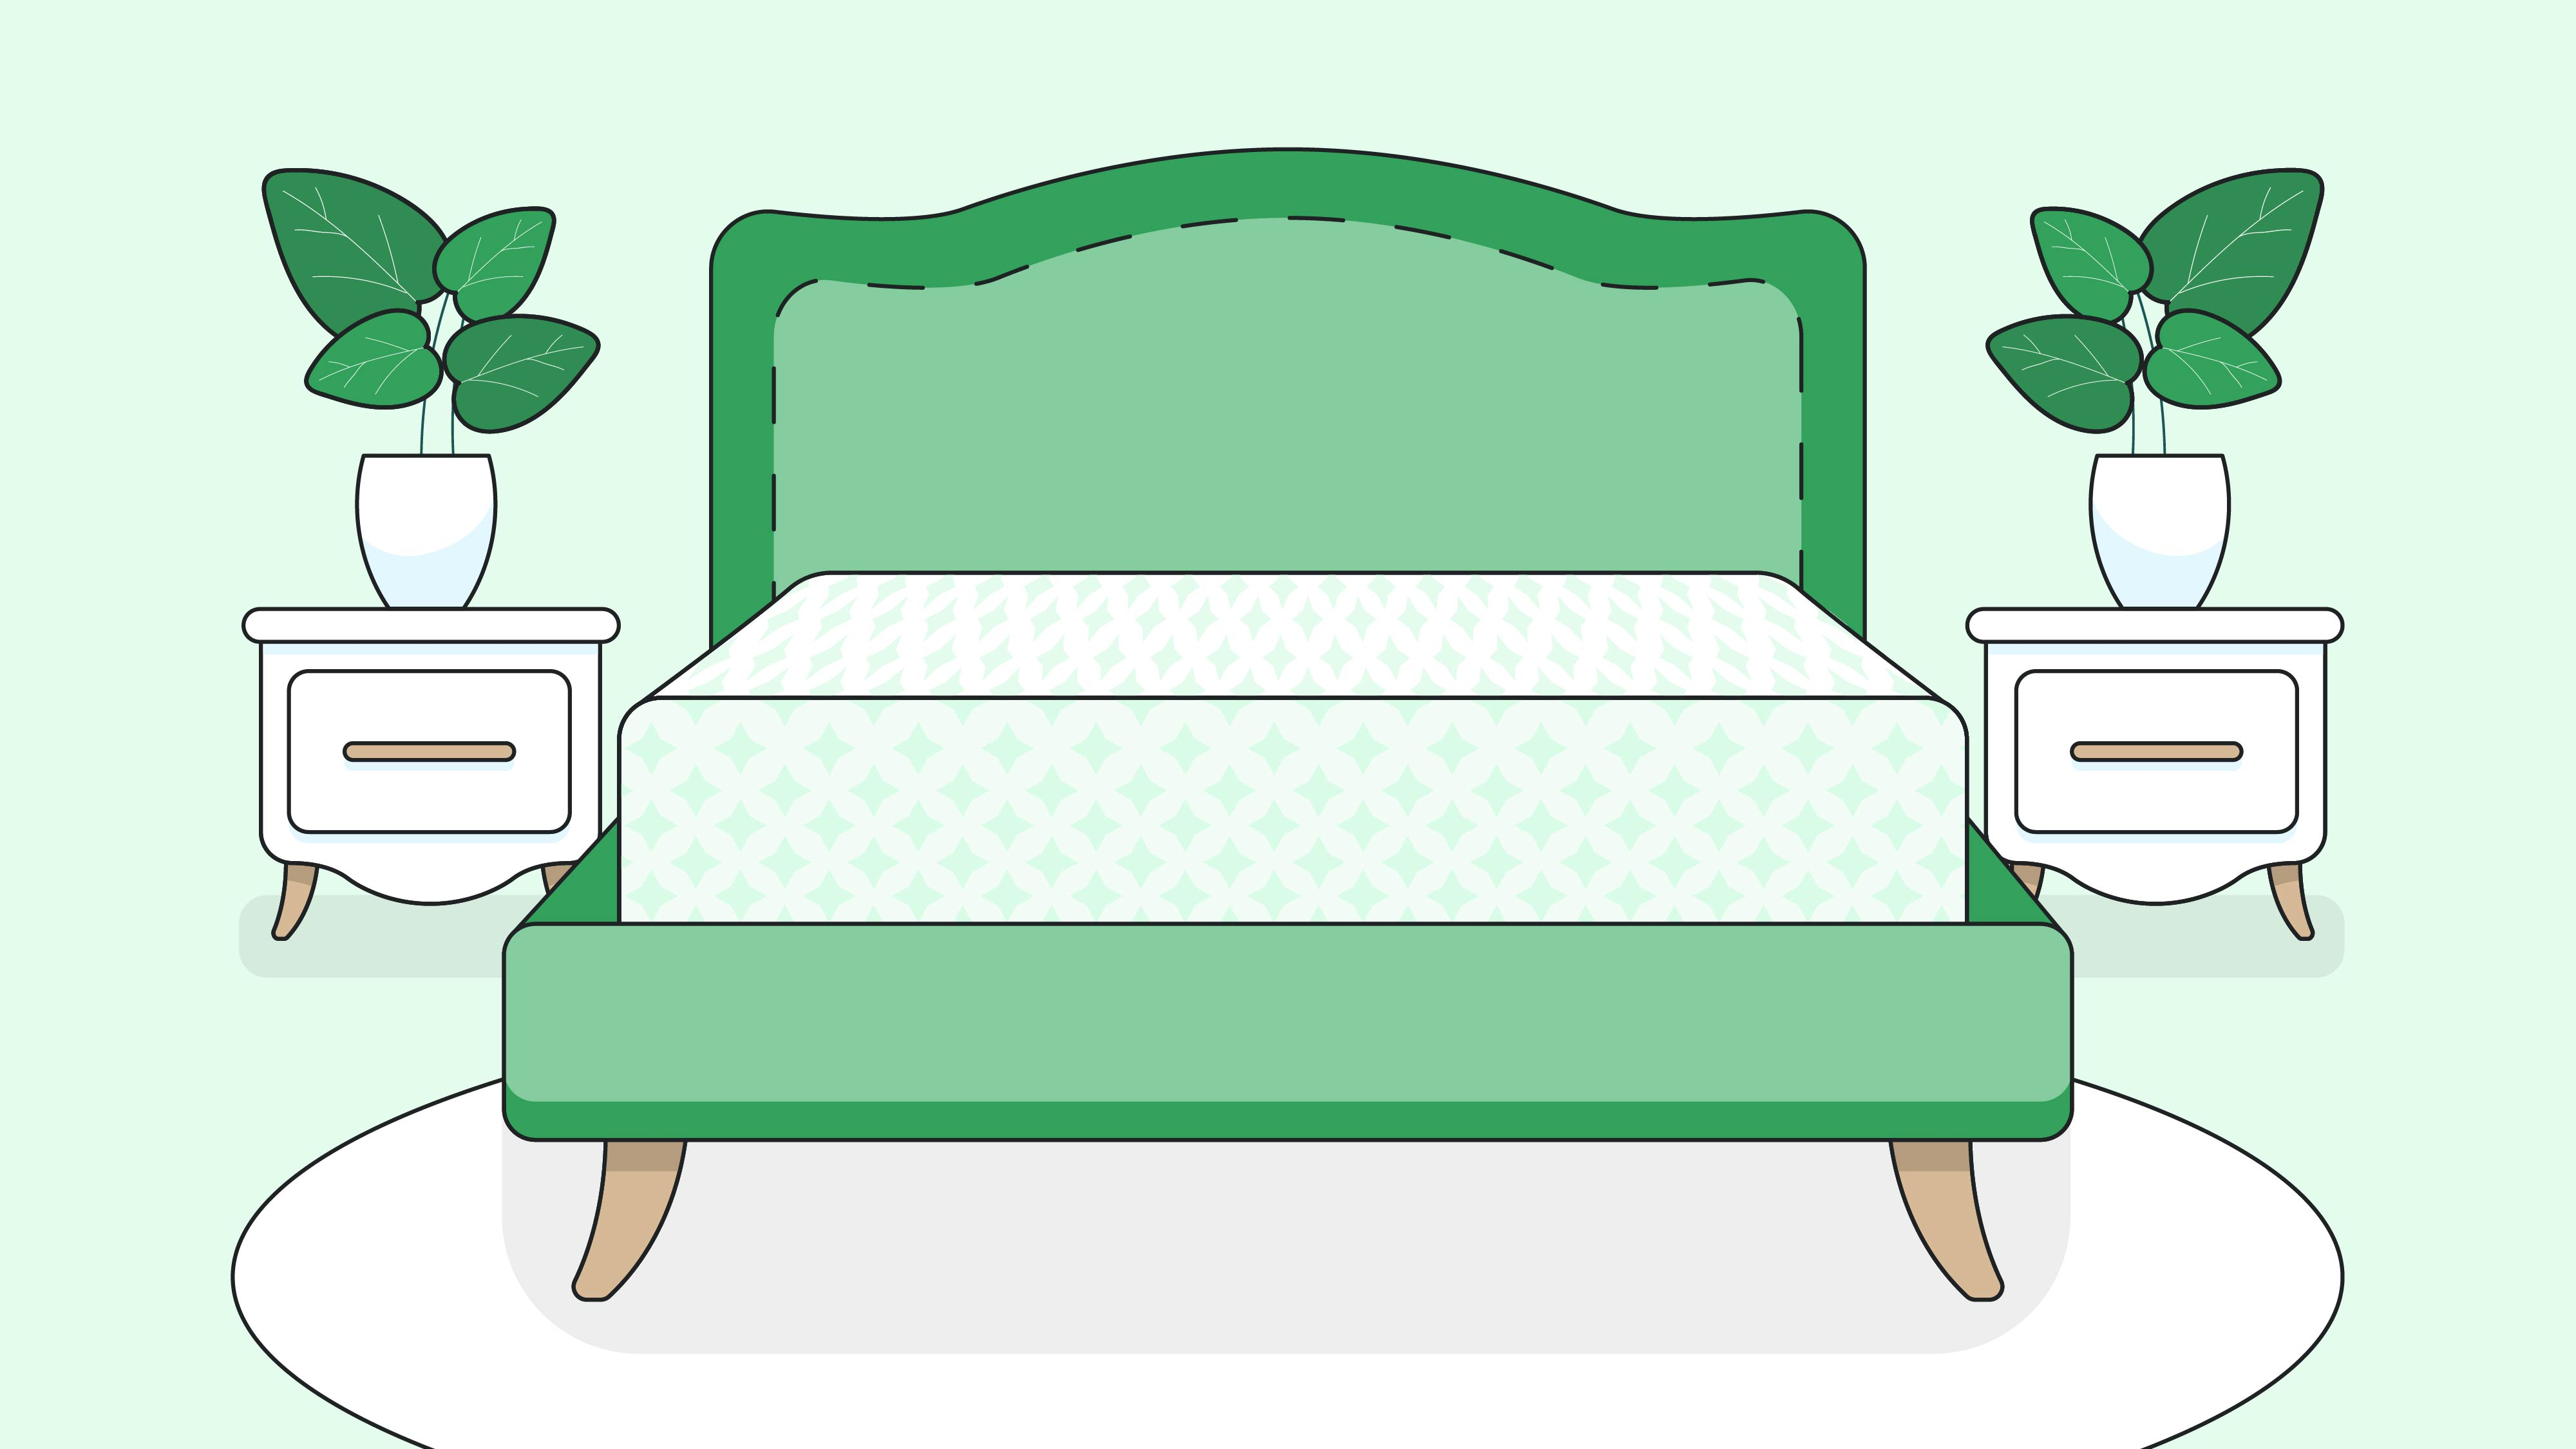 Best Organic Eco-Friendly Mattress: 2020 Reviews and Buyer's Guide